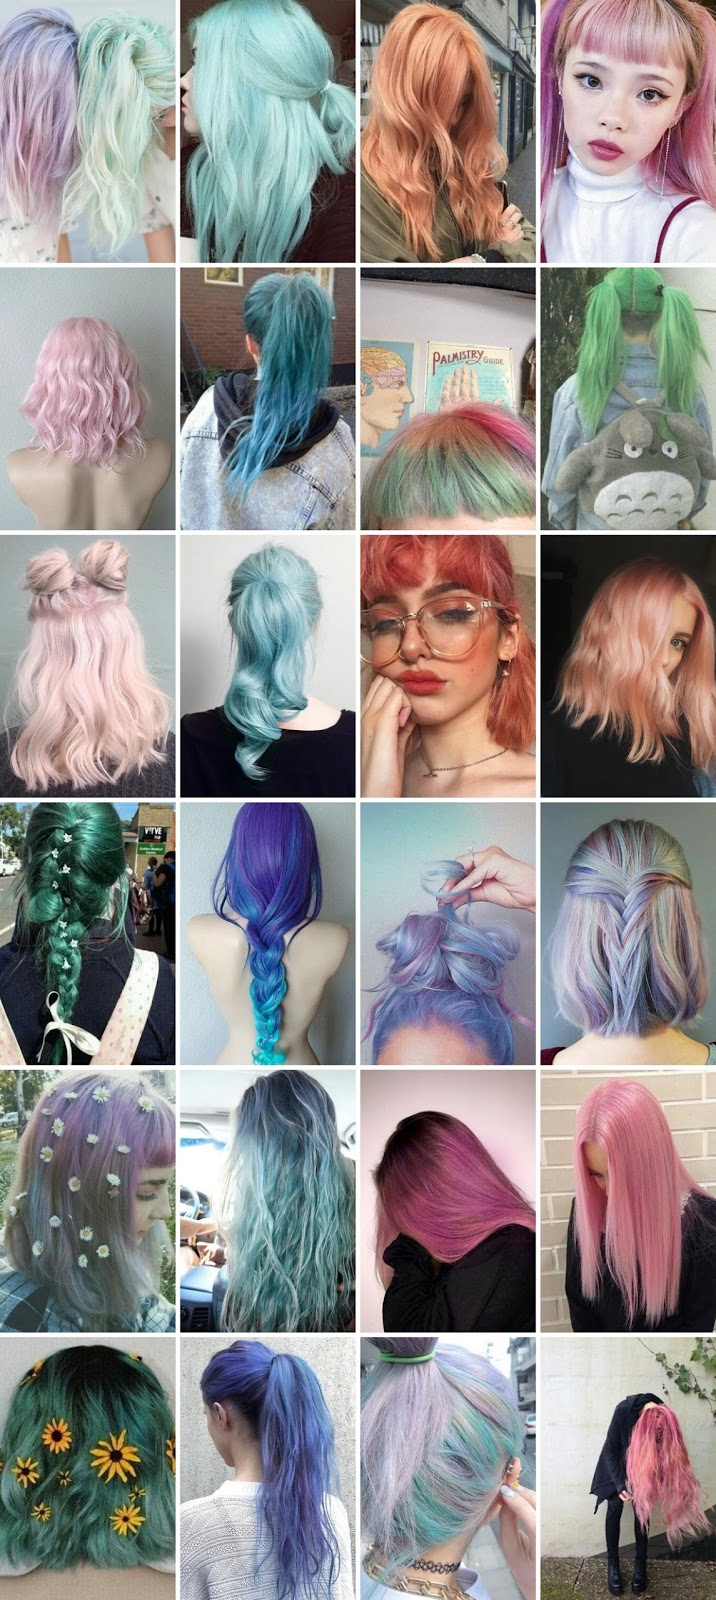 Deaddsouls Edgy Hair Color Ideas For For The New Year